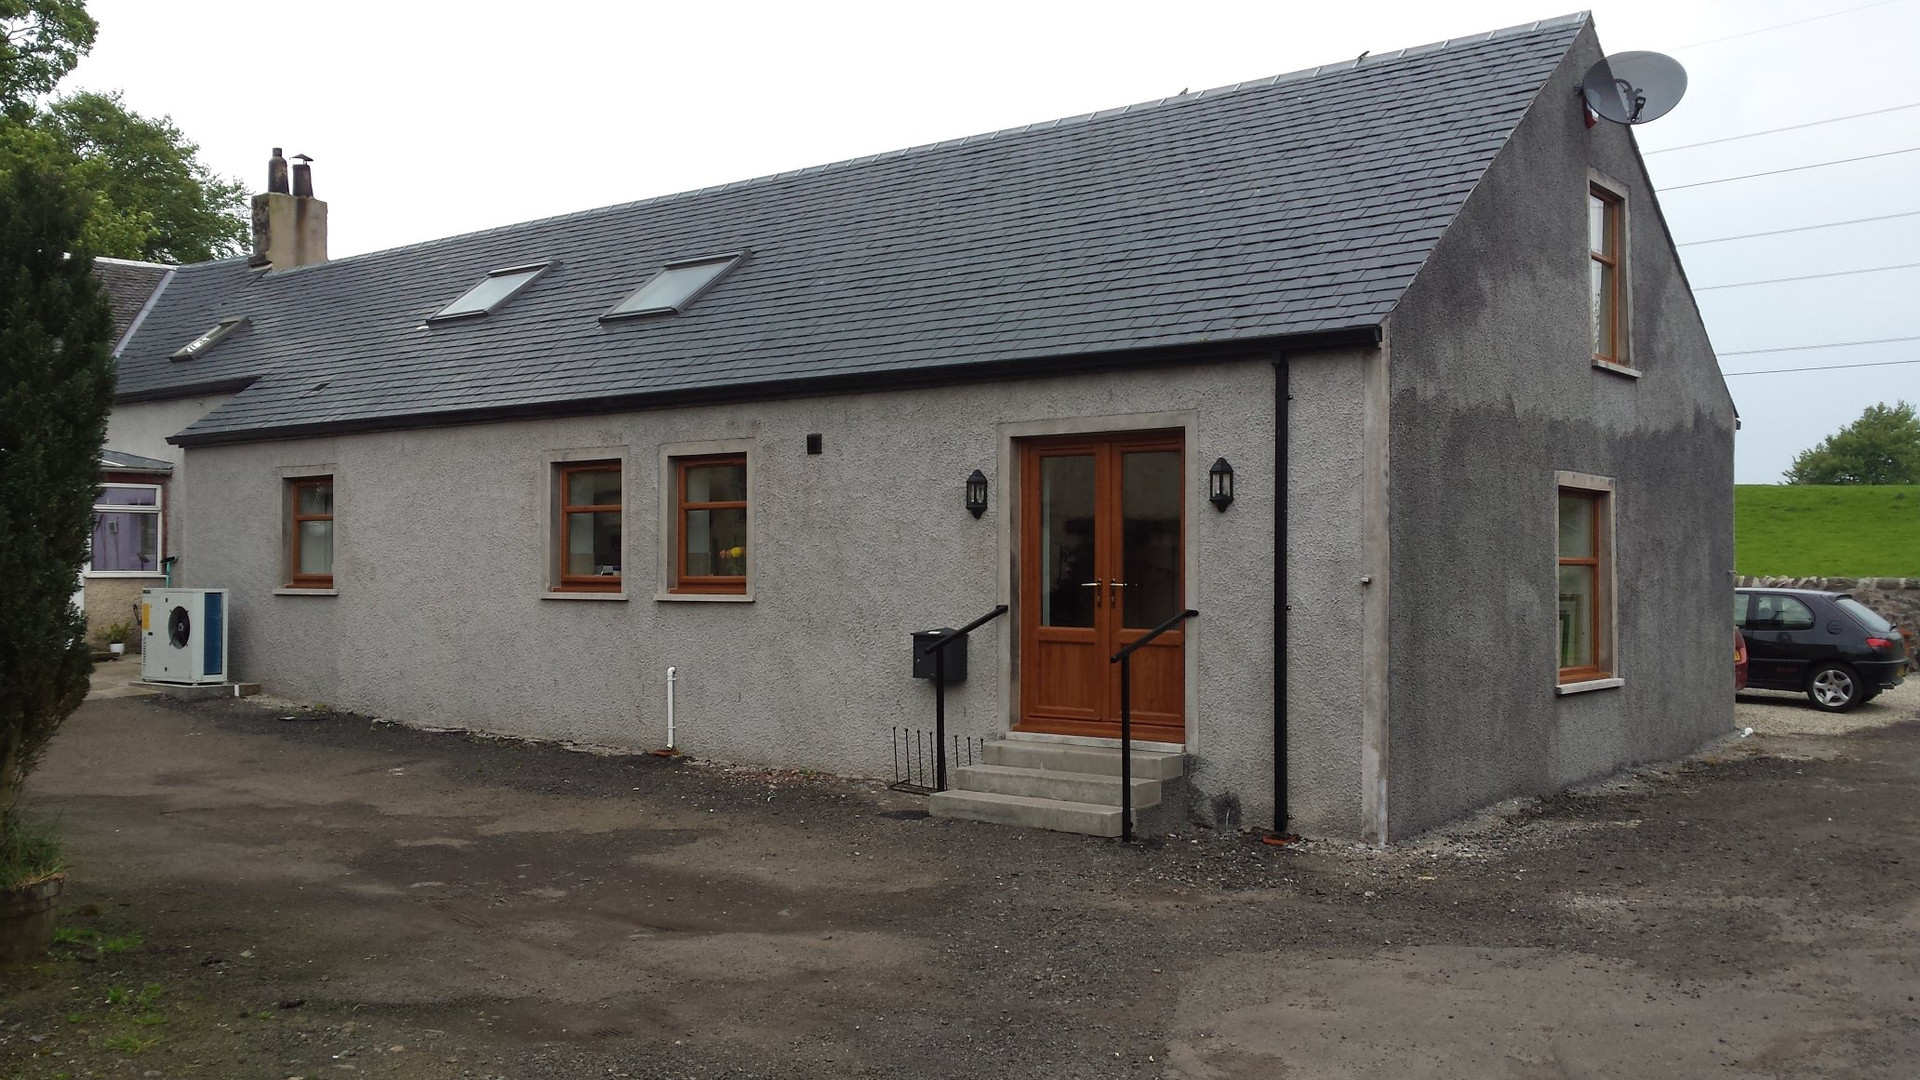 Kilbarchan barn conversion - after